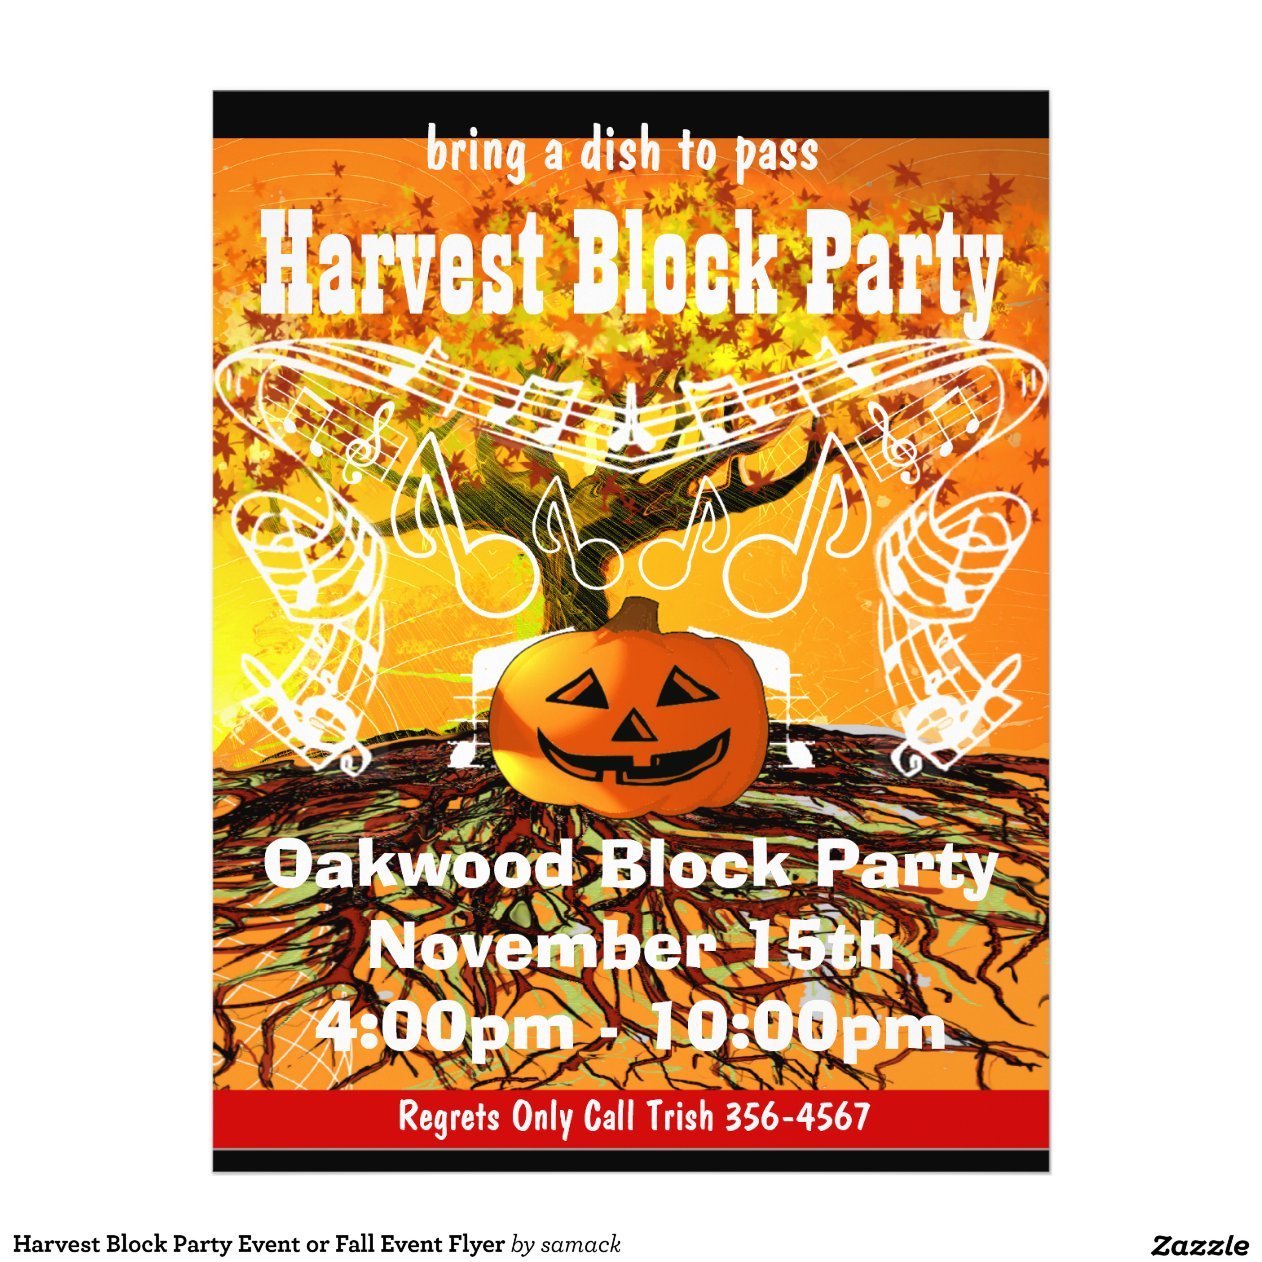 Harvest Block Party Event Fall Flyer-r0f5640a4f15546968c3e411f1c25989d Vgvyf 8byvr 1200